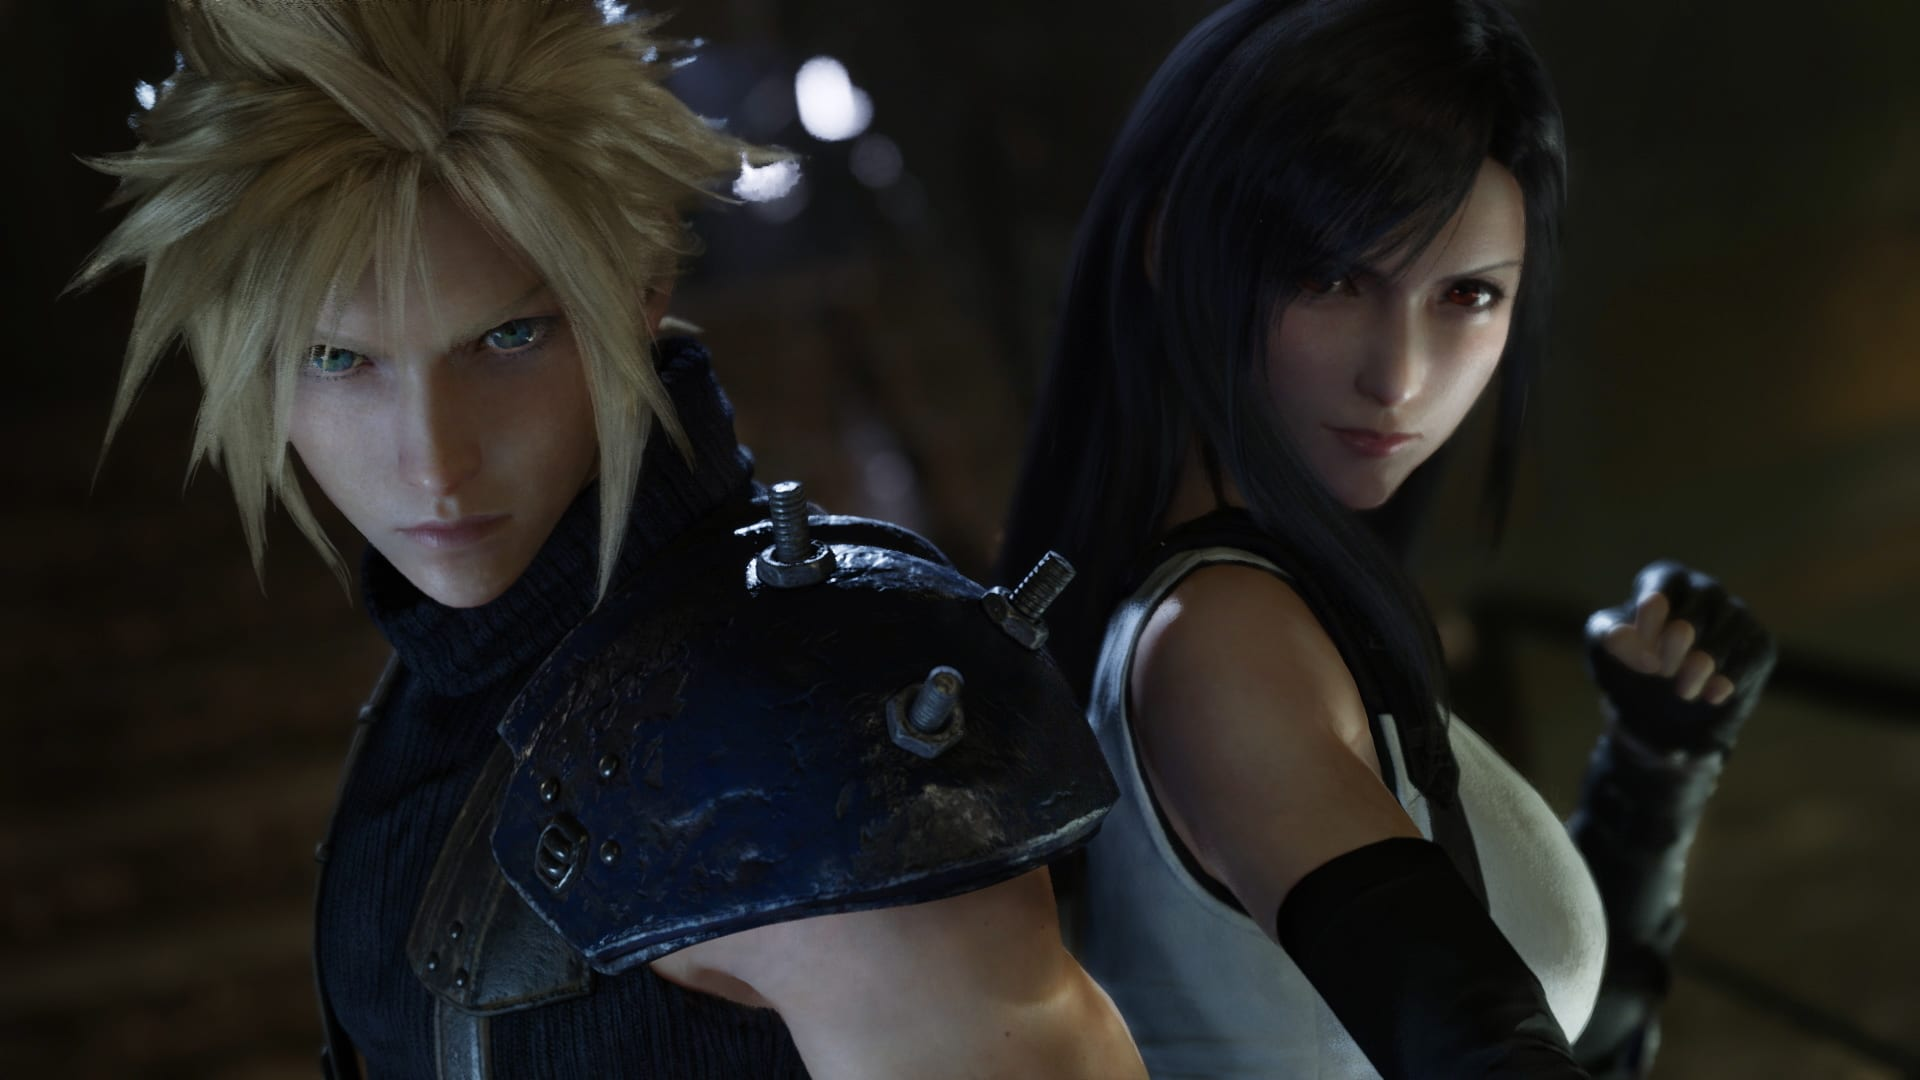 final fantasy 7 remake, 300 stagger, staggering feat